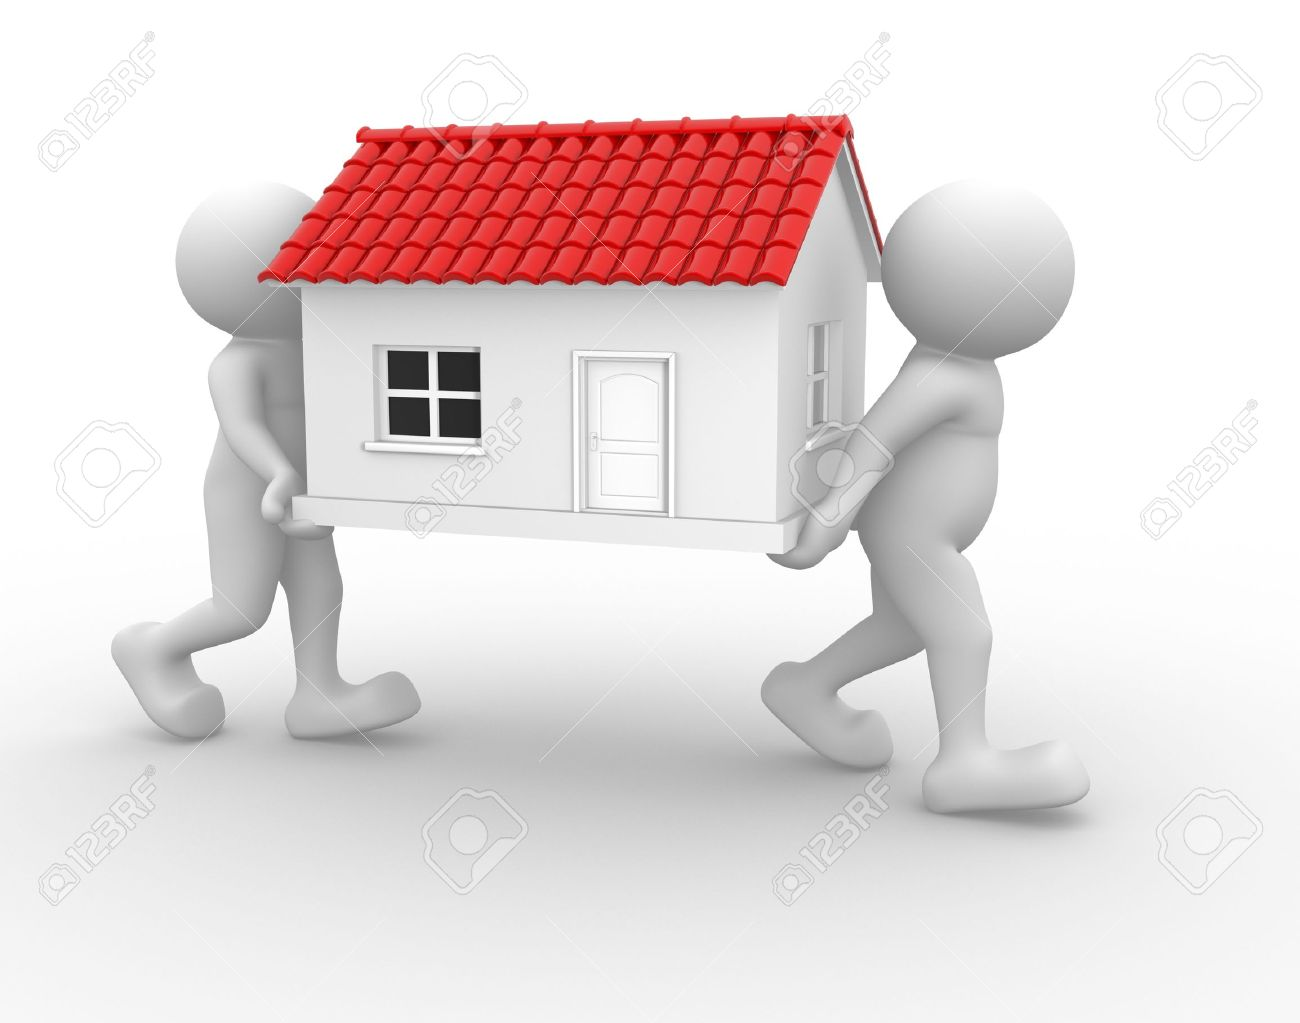 3d people - human character and a house. 3d render illustration Stock Photo - 14664978